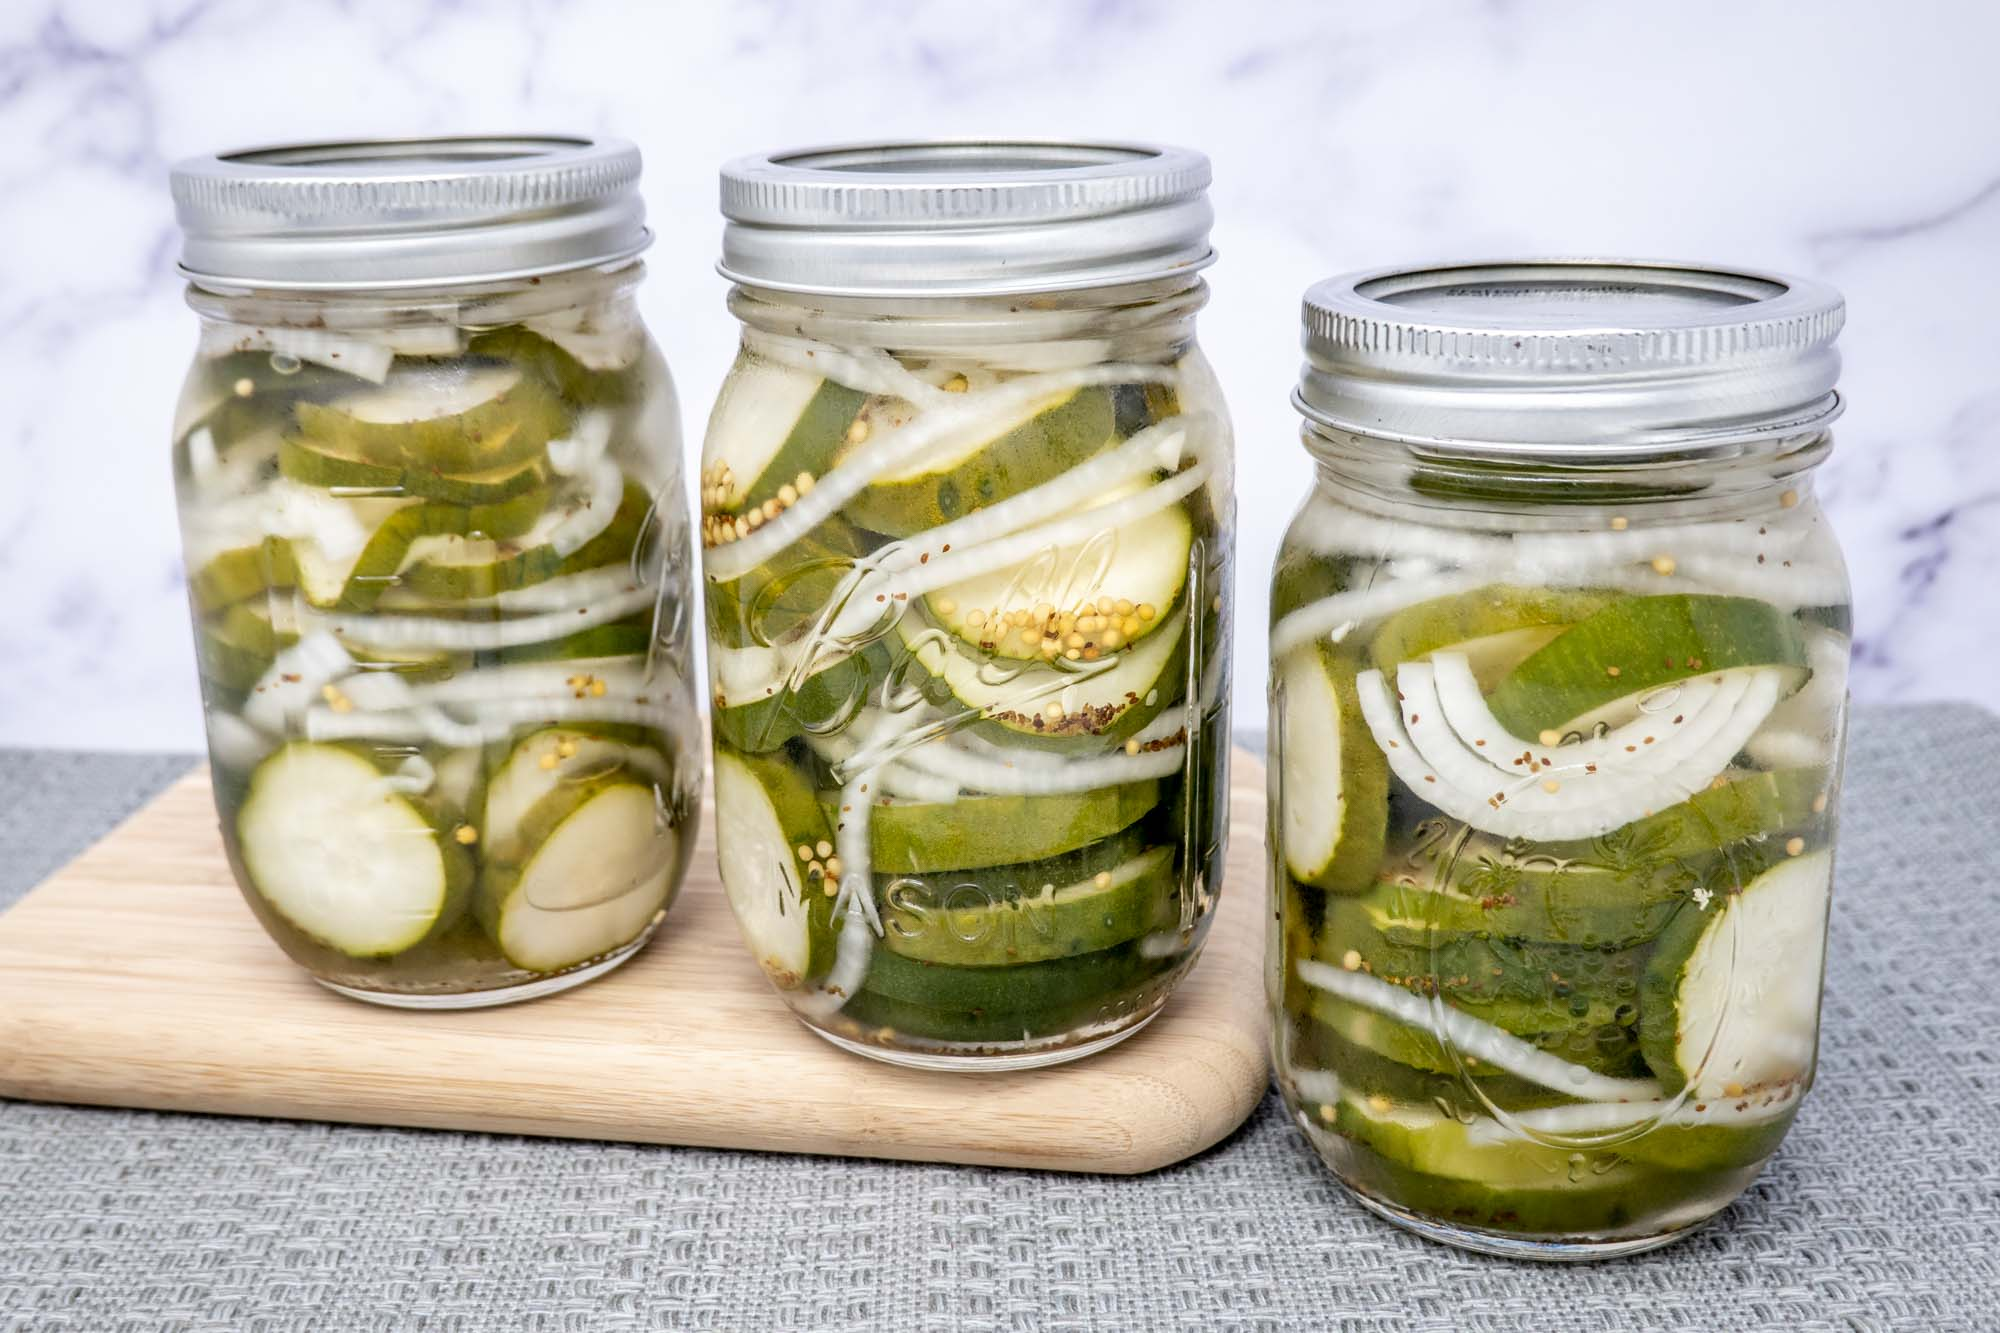 Three jars of pickled cucumbers and onions two of which are sitting on a cutting board